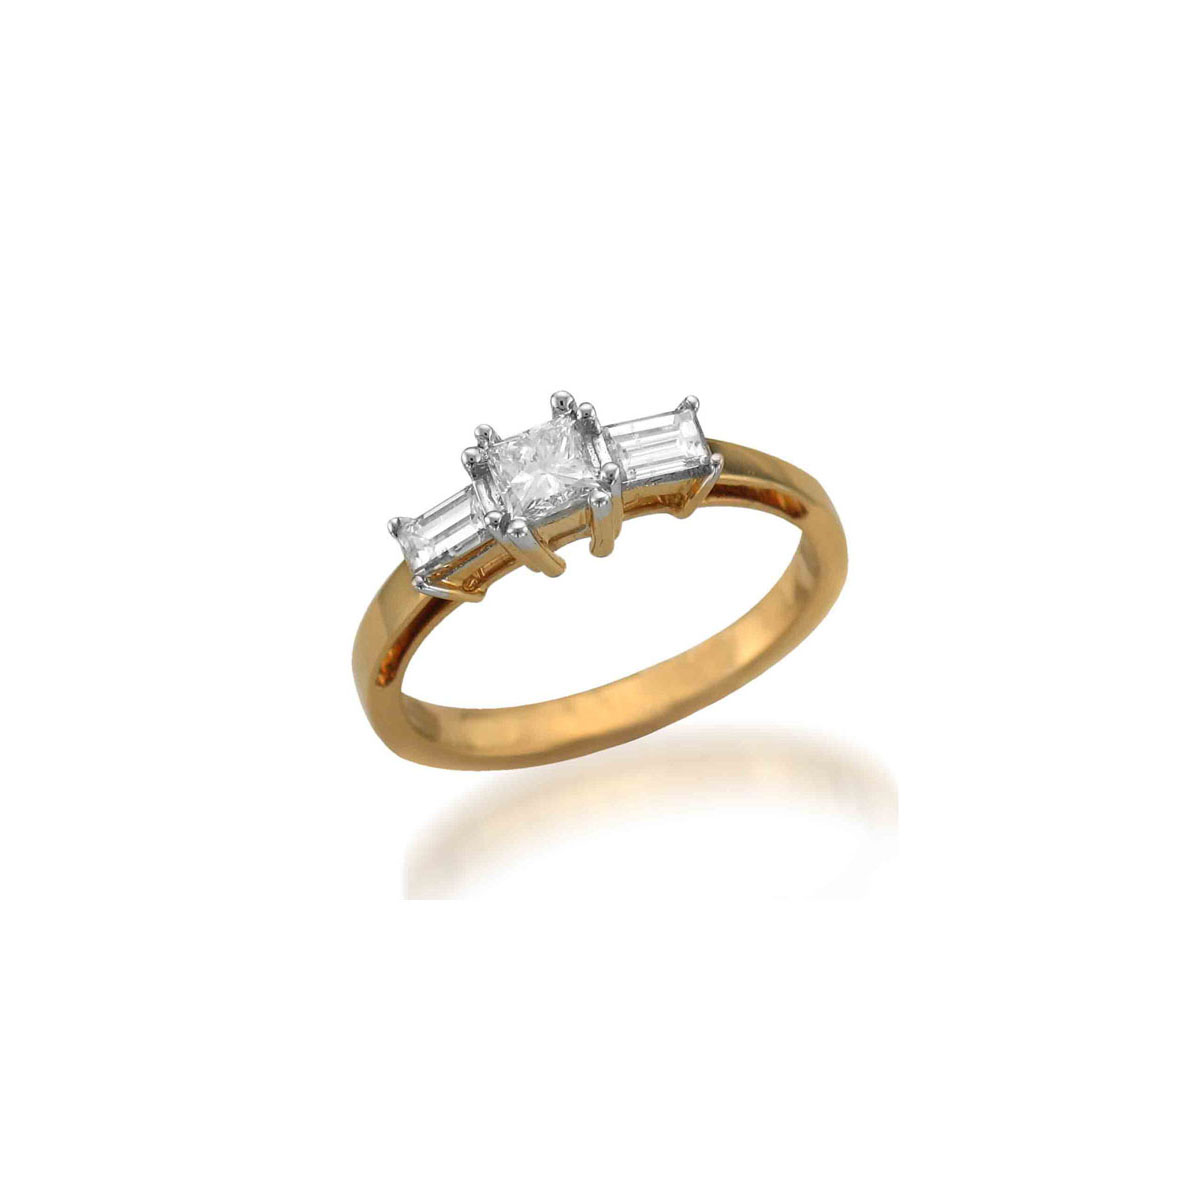 ring wedding aaa men aaaaa cz filled rings gold stone sz for band zircon white solitaire from item engagement in vecalon